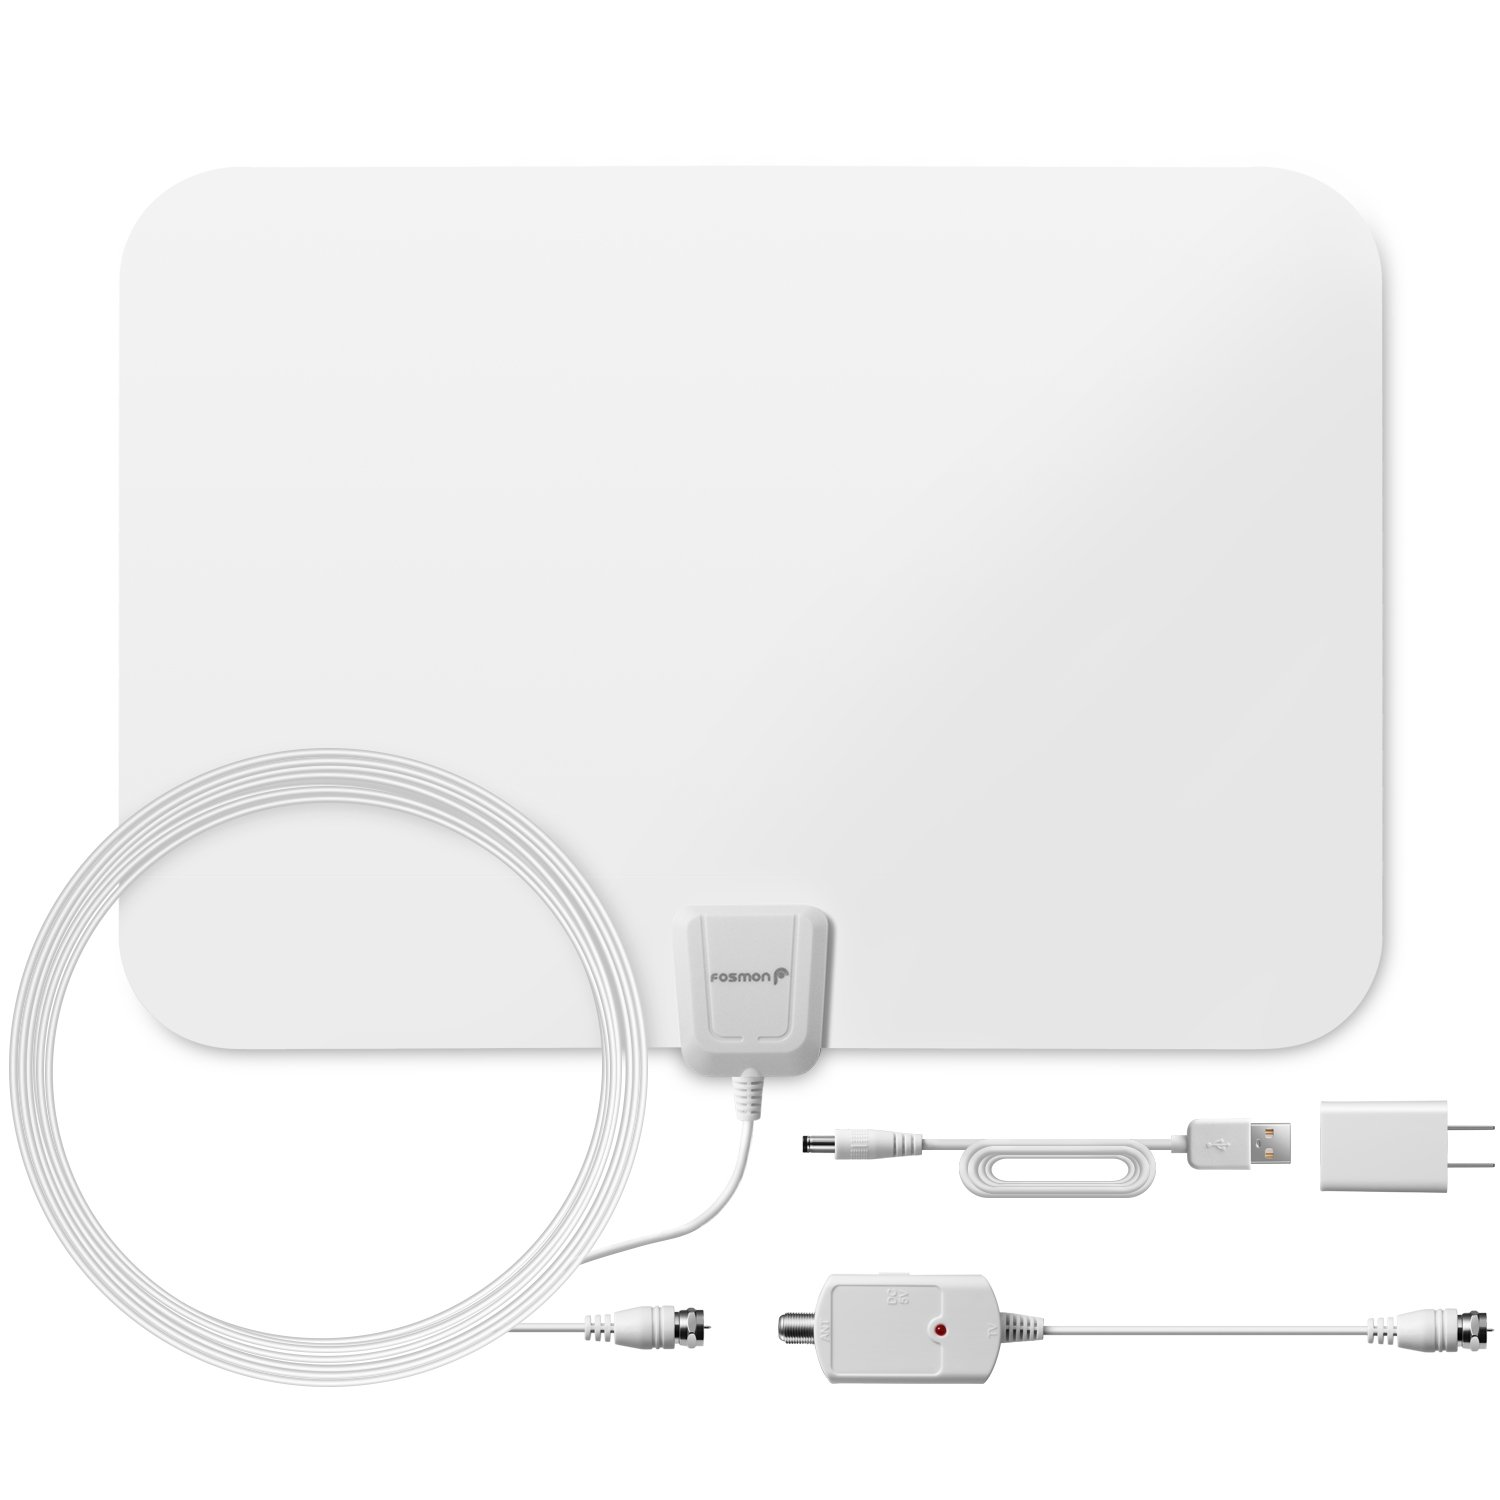 50 Miles HDTV Antenna, Fosmon Indoor Ultra Thin HDTV Antenna with Built-in Amplifier Signal Booster and High Signal Capture of 16.4ft Coaxial Cable (White)